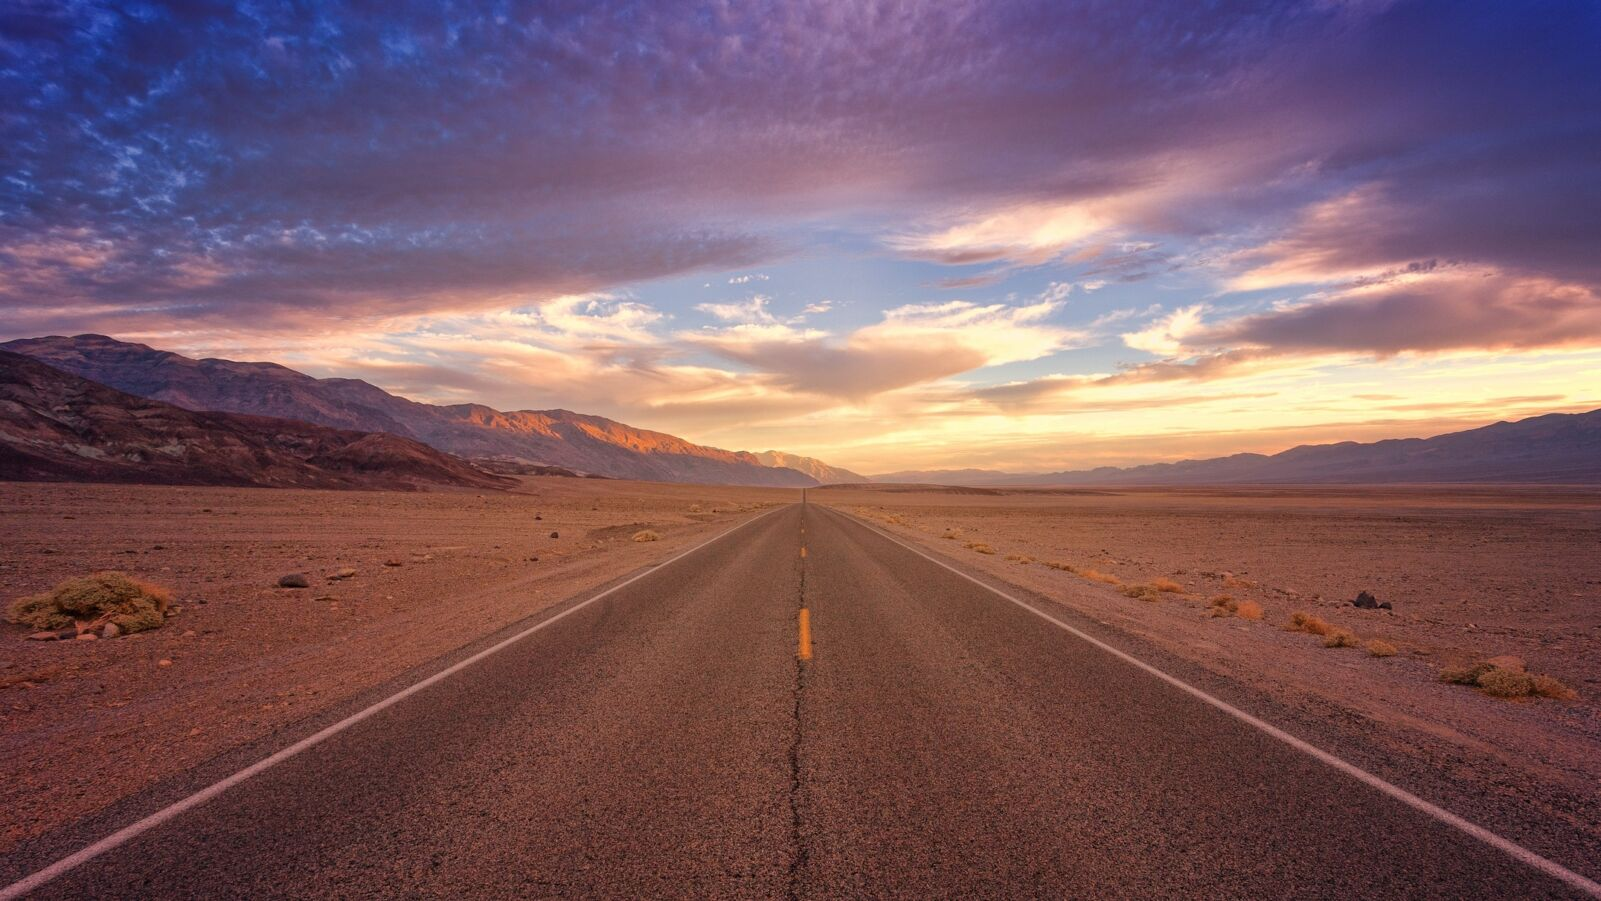 Wide angle image of yellow road leading through the desert to blue skies